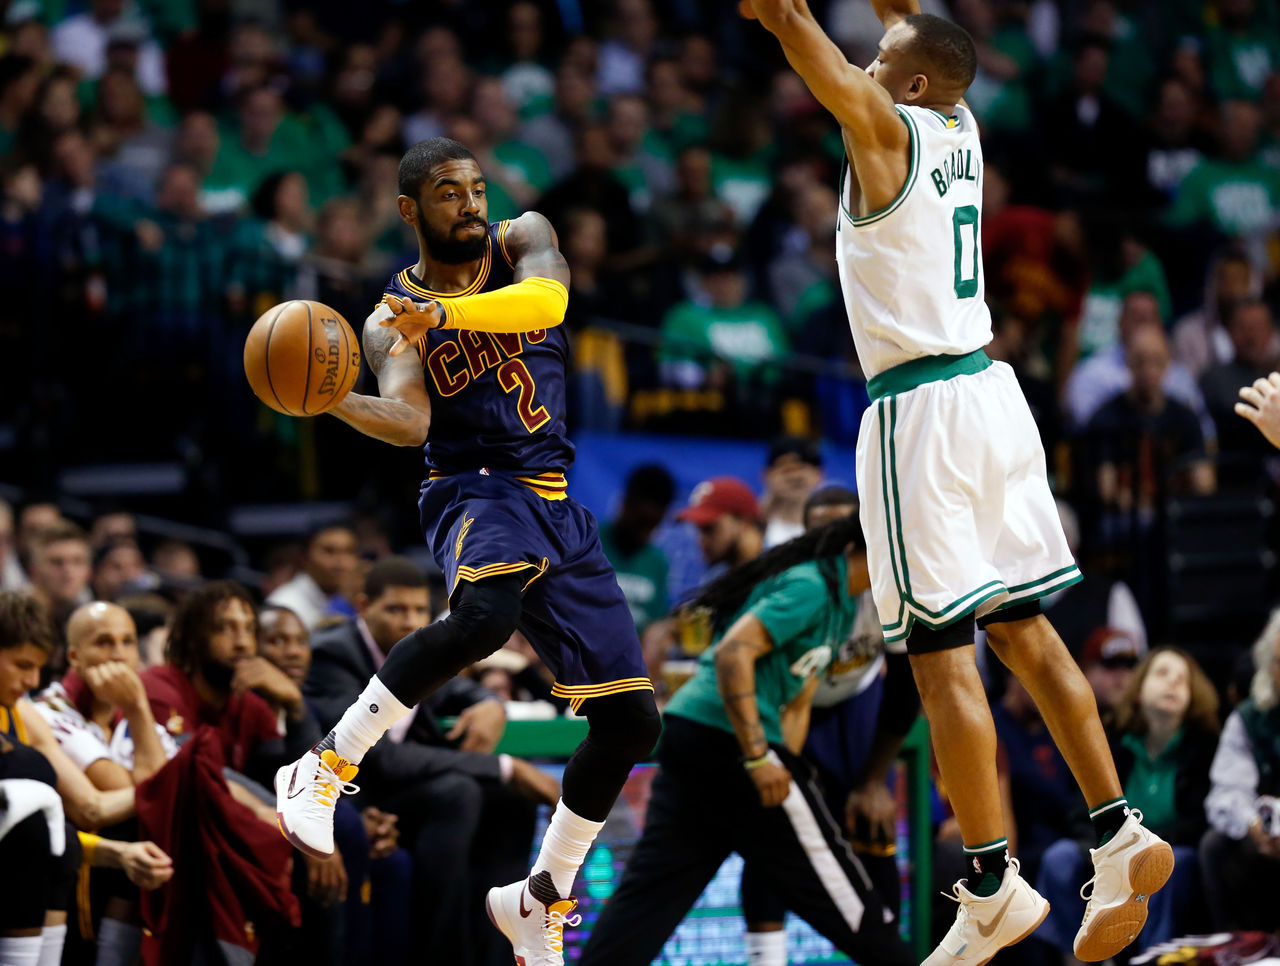 Cropped 2017 05 26t020611z 1619172019 nocid rtrmadp 3 nba playoffs cleveland cavaliers at boston celtics